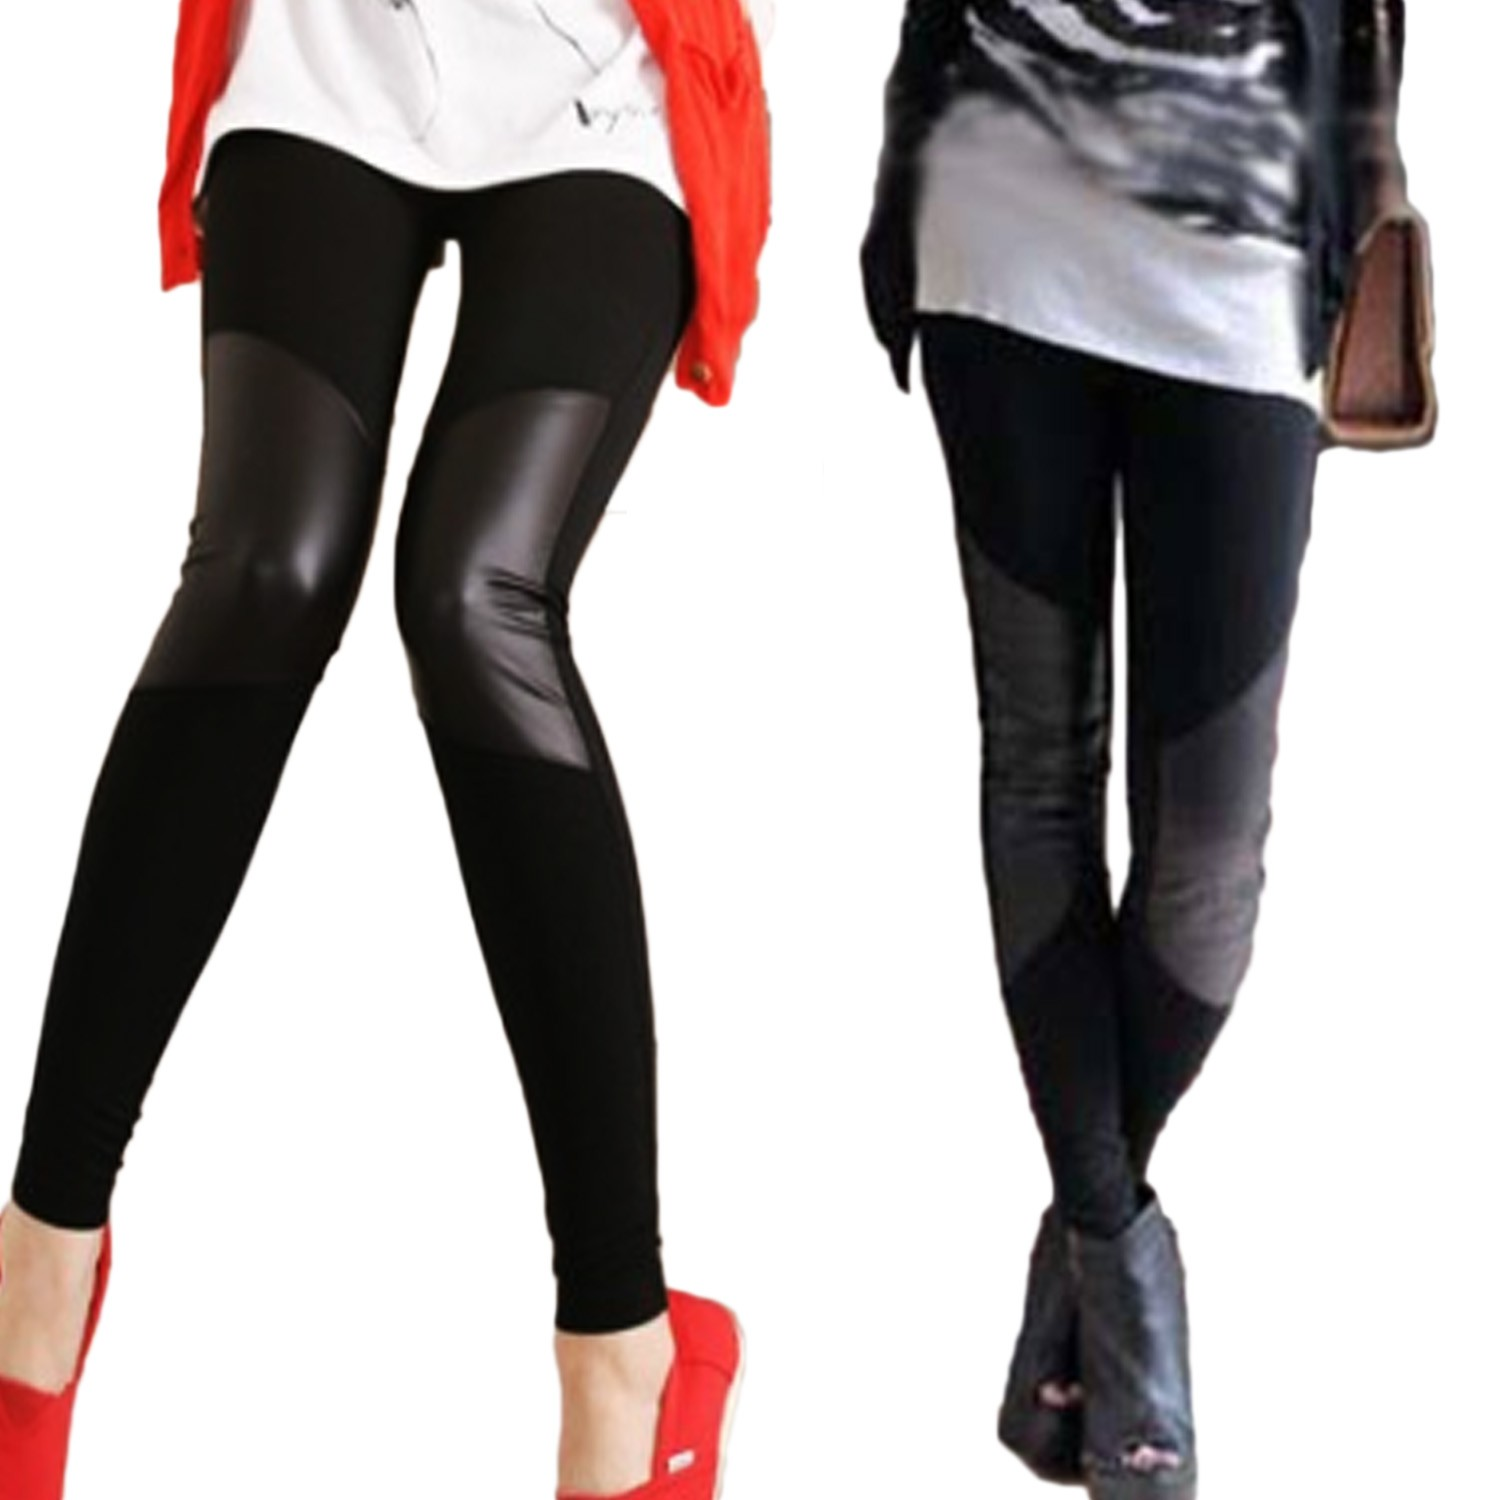 Black/Grey Splicing NEW Leather Cotton Leggings Tights AU sz S Ladies Japan